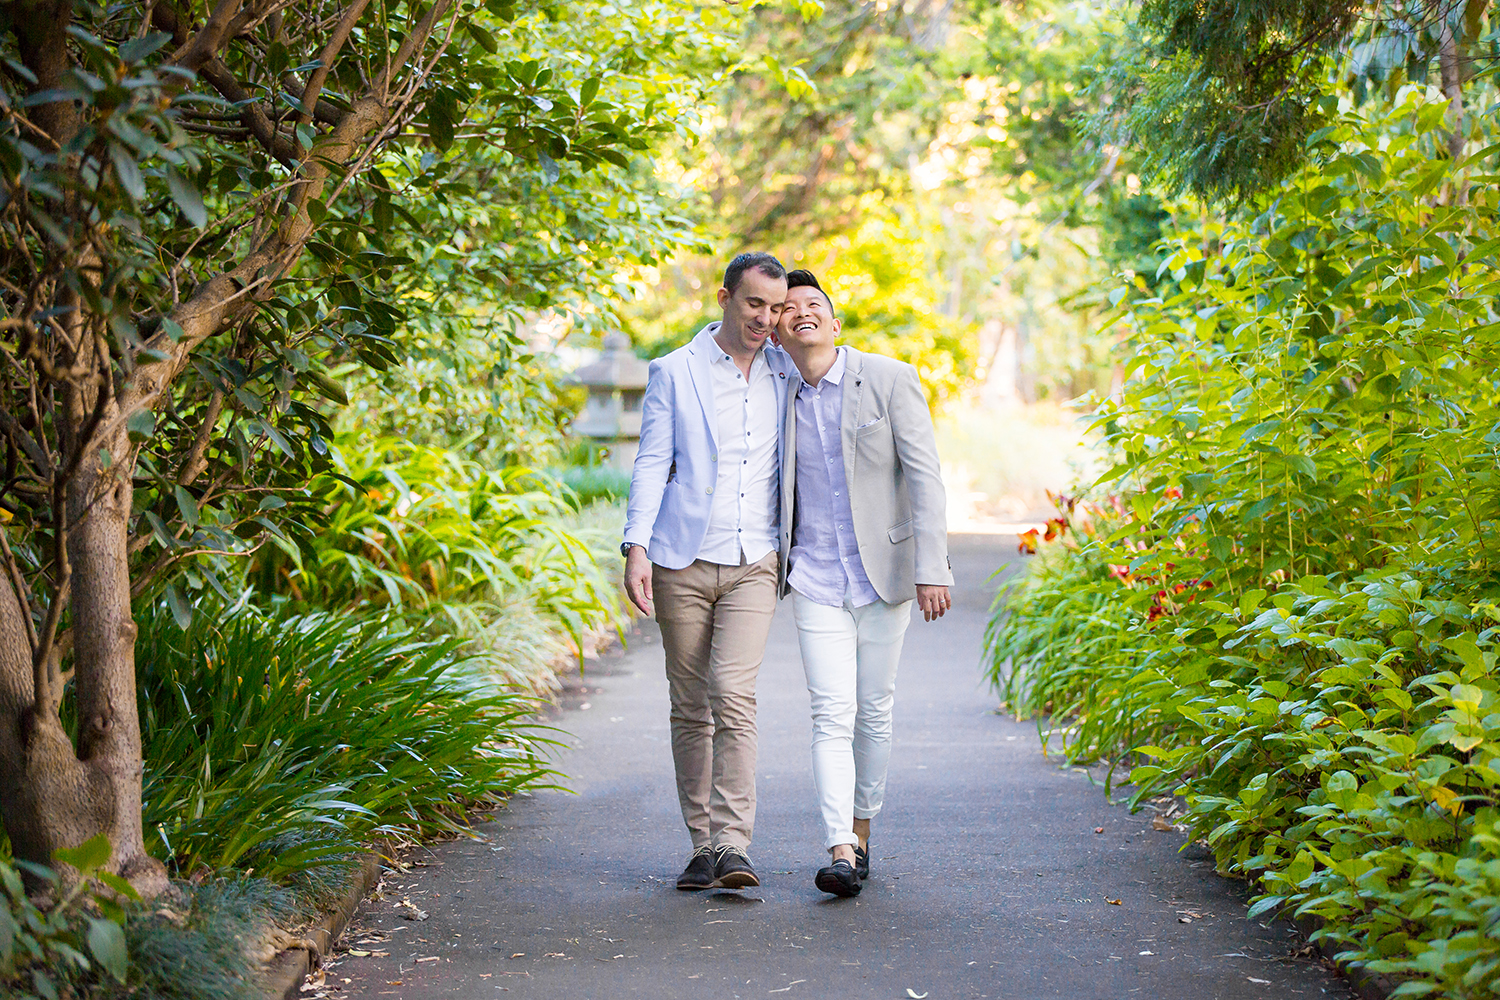 Sydney Gay Wedding Photographer - Jennifer Lam Photography (1).jpg